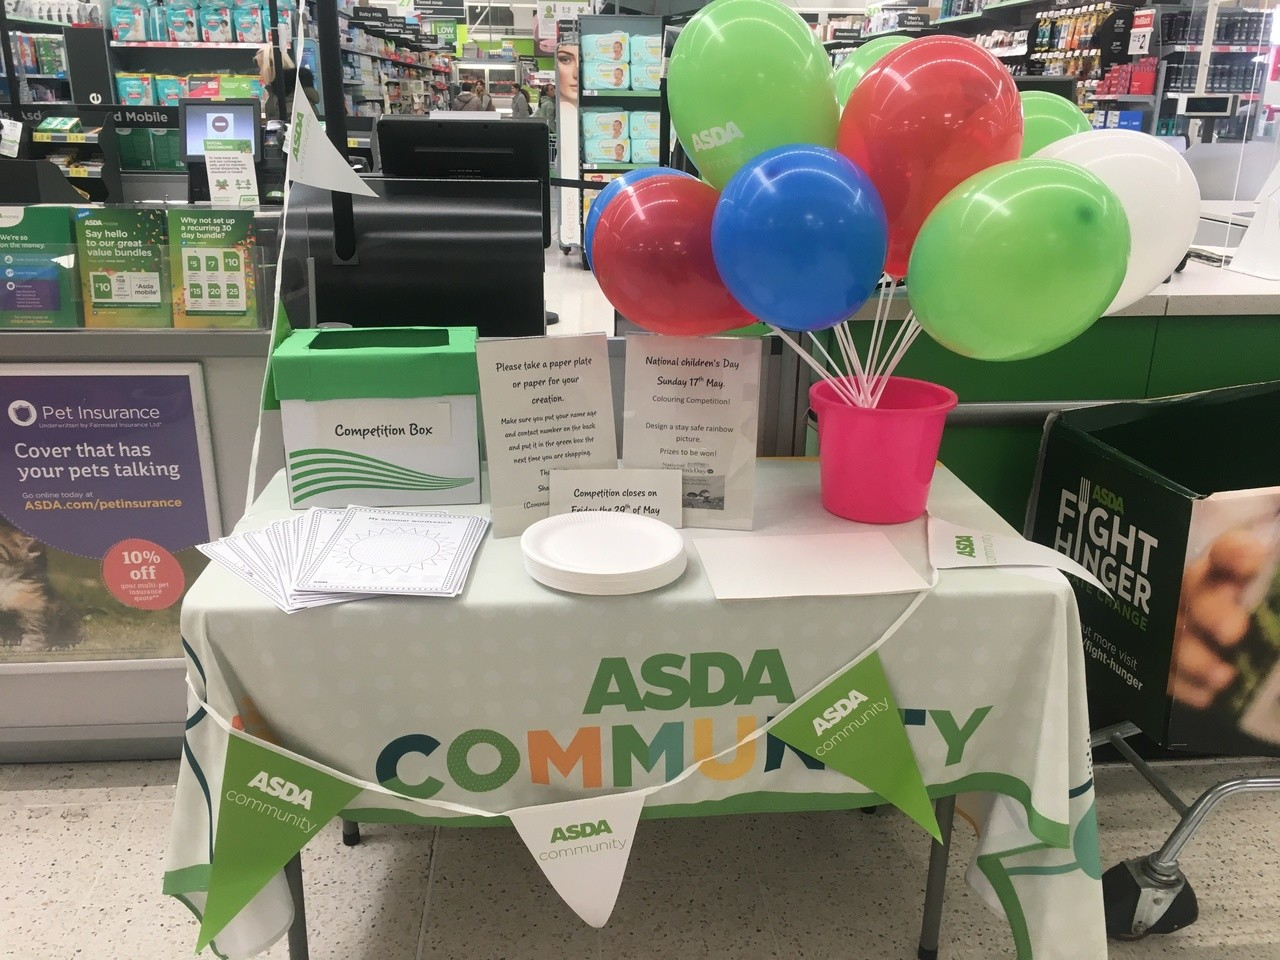 National Children's Day contest | Asda Clayton Green